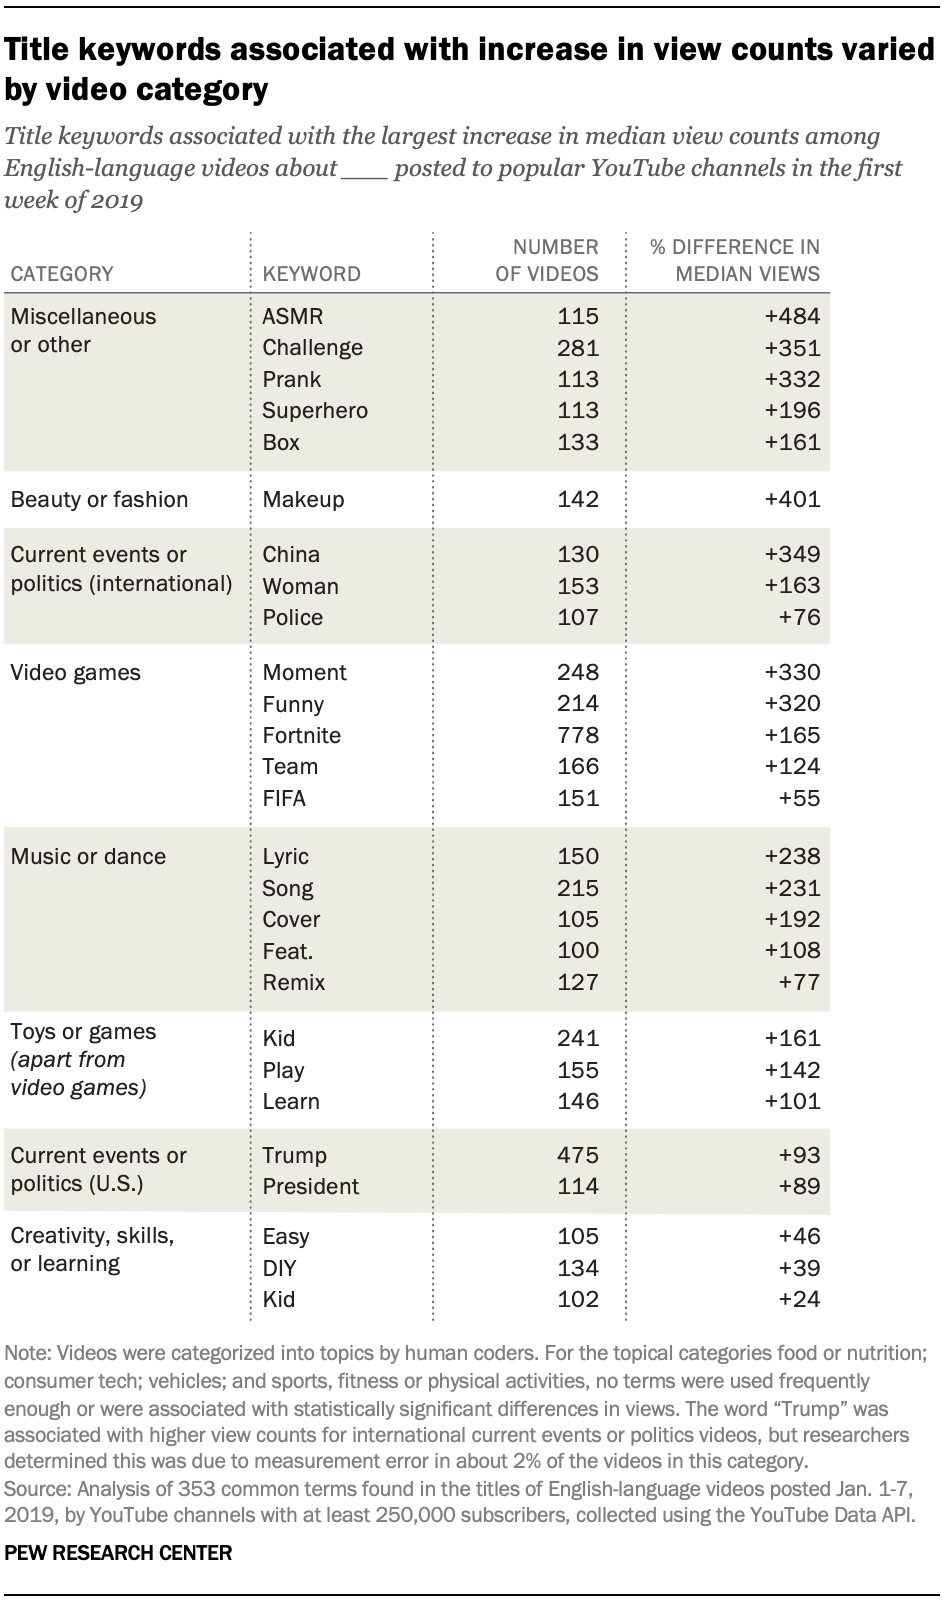 Title keywords associated with increase in view counts varied by video category